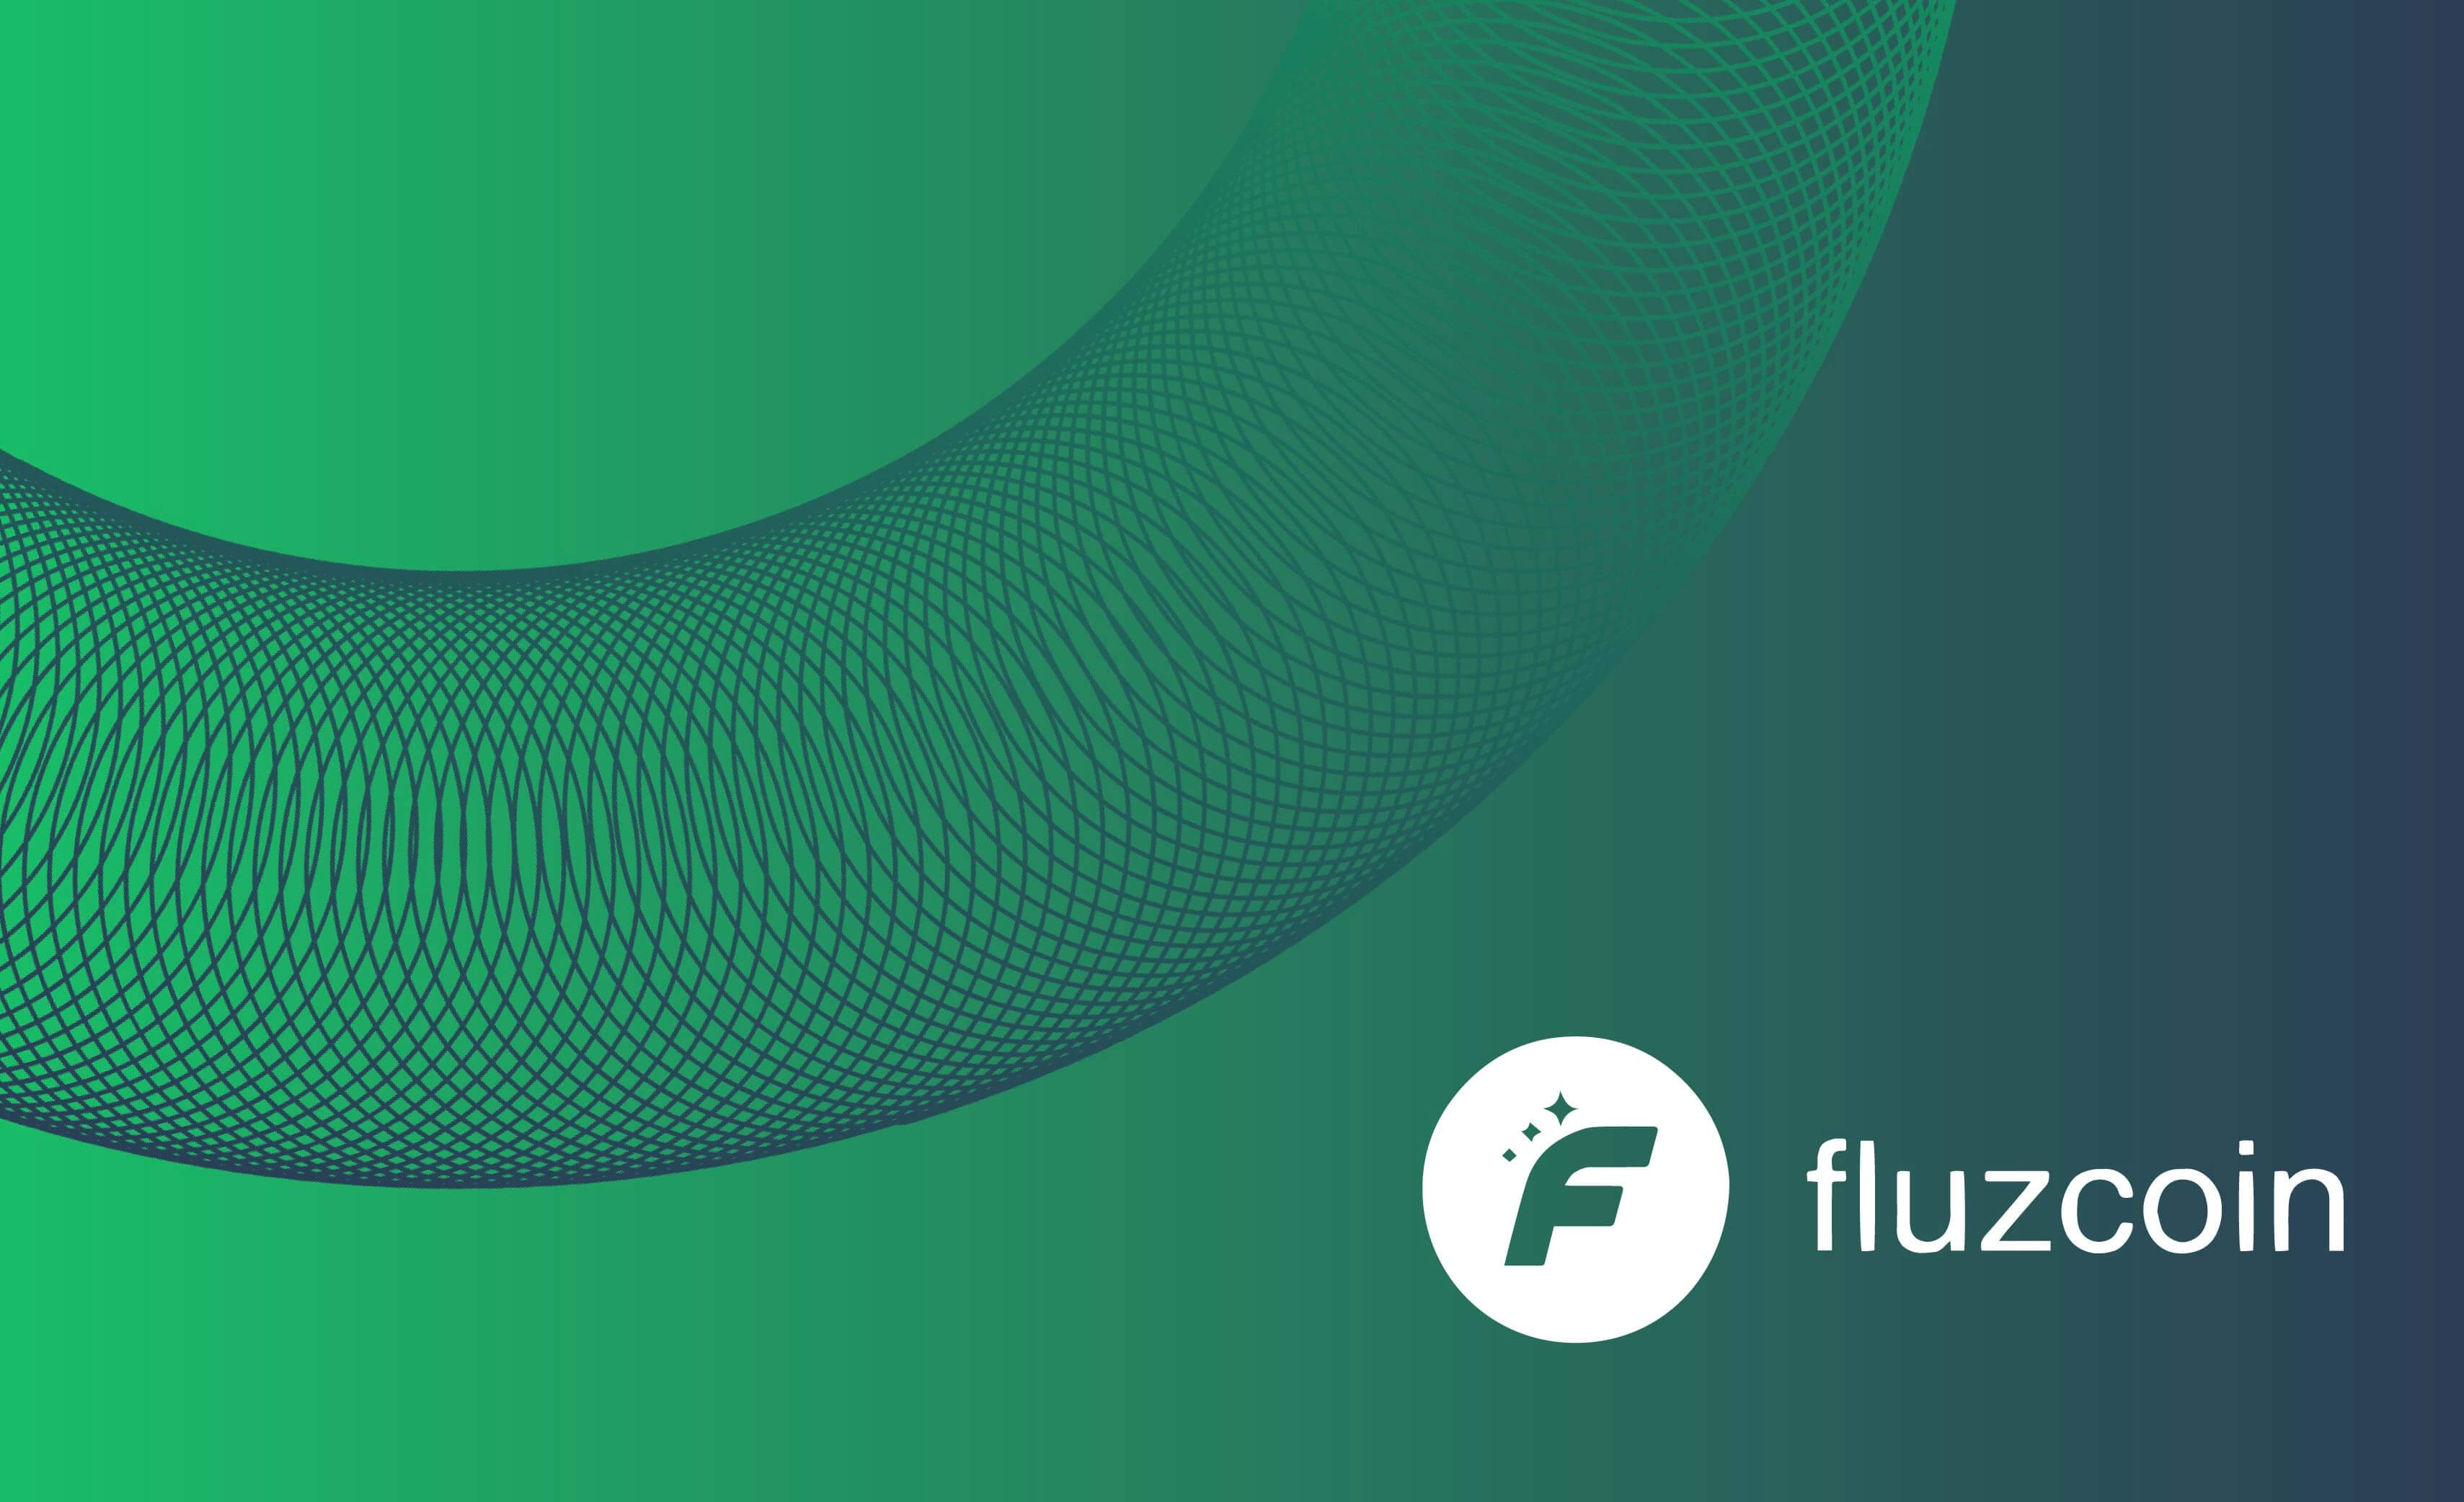 Announcement of Fluzcoin